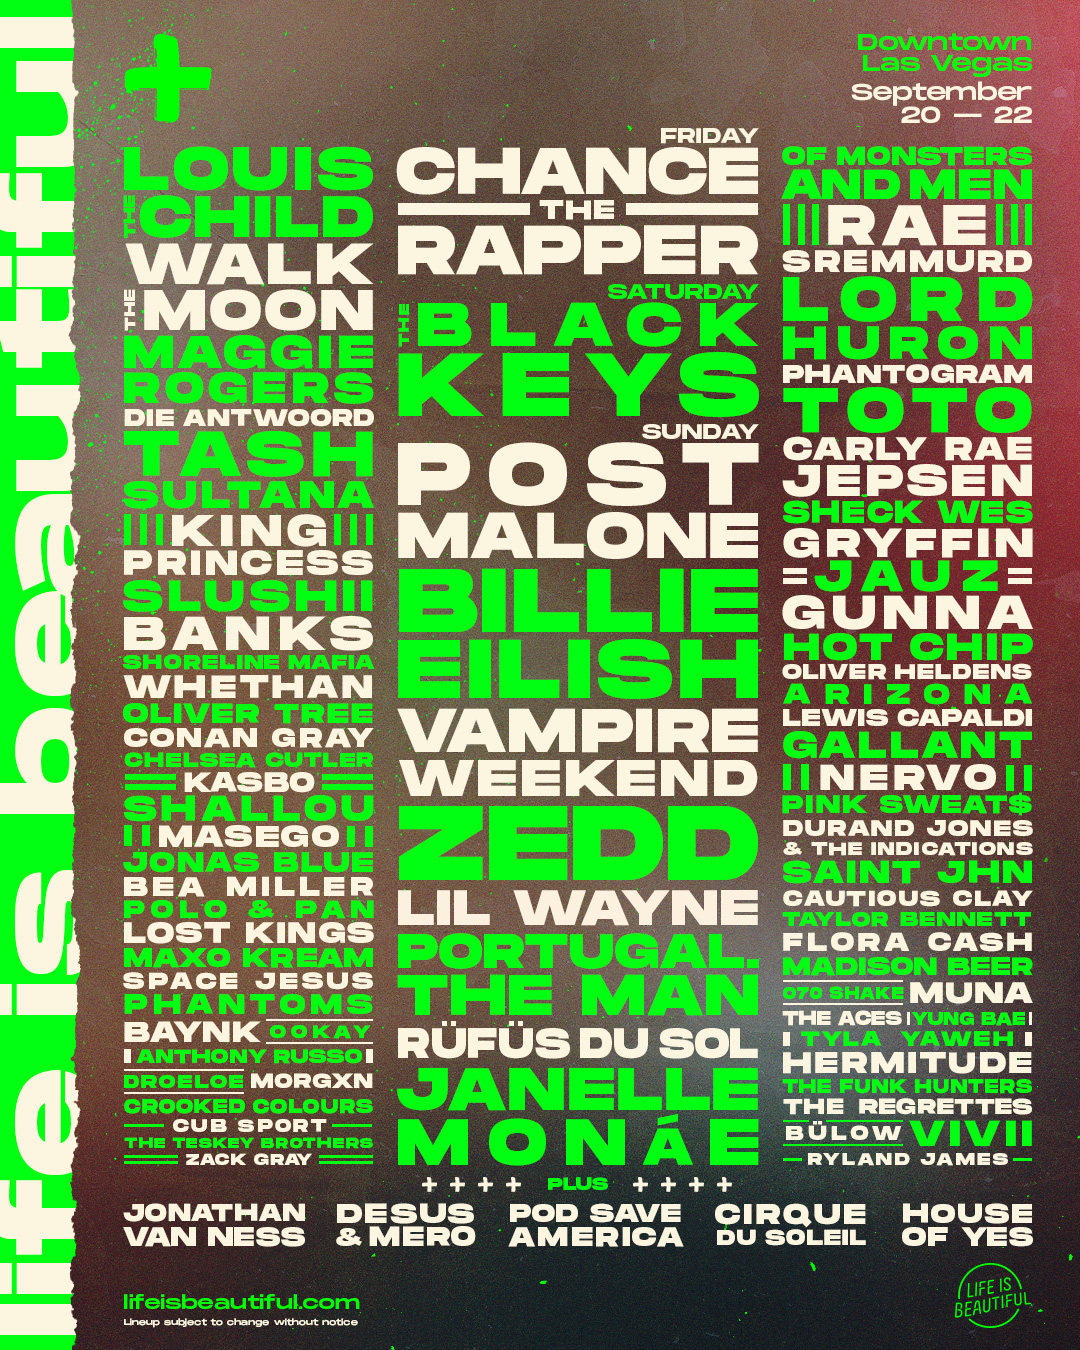 Lineup Poster, 2019. Initial announcement release.